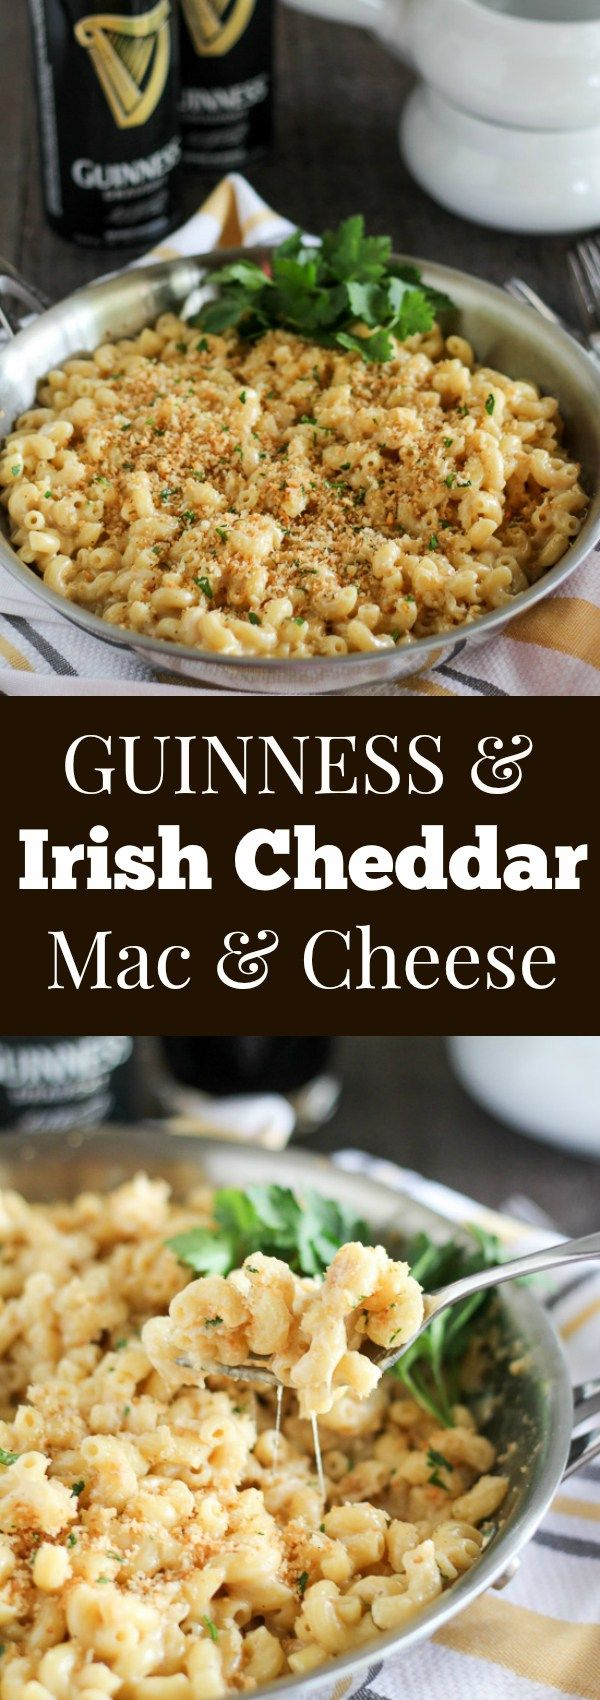 Guinness and Irish Chedddar Macaroni & Cheese